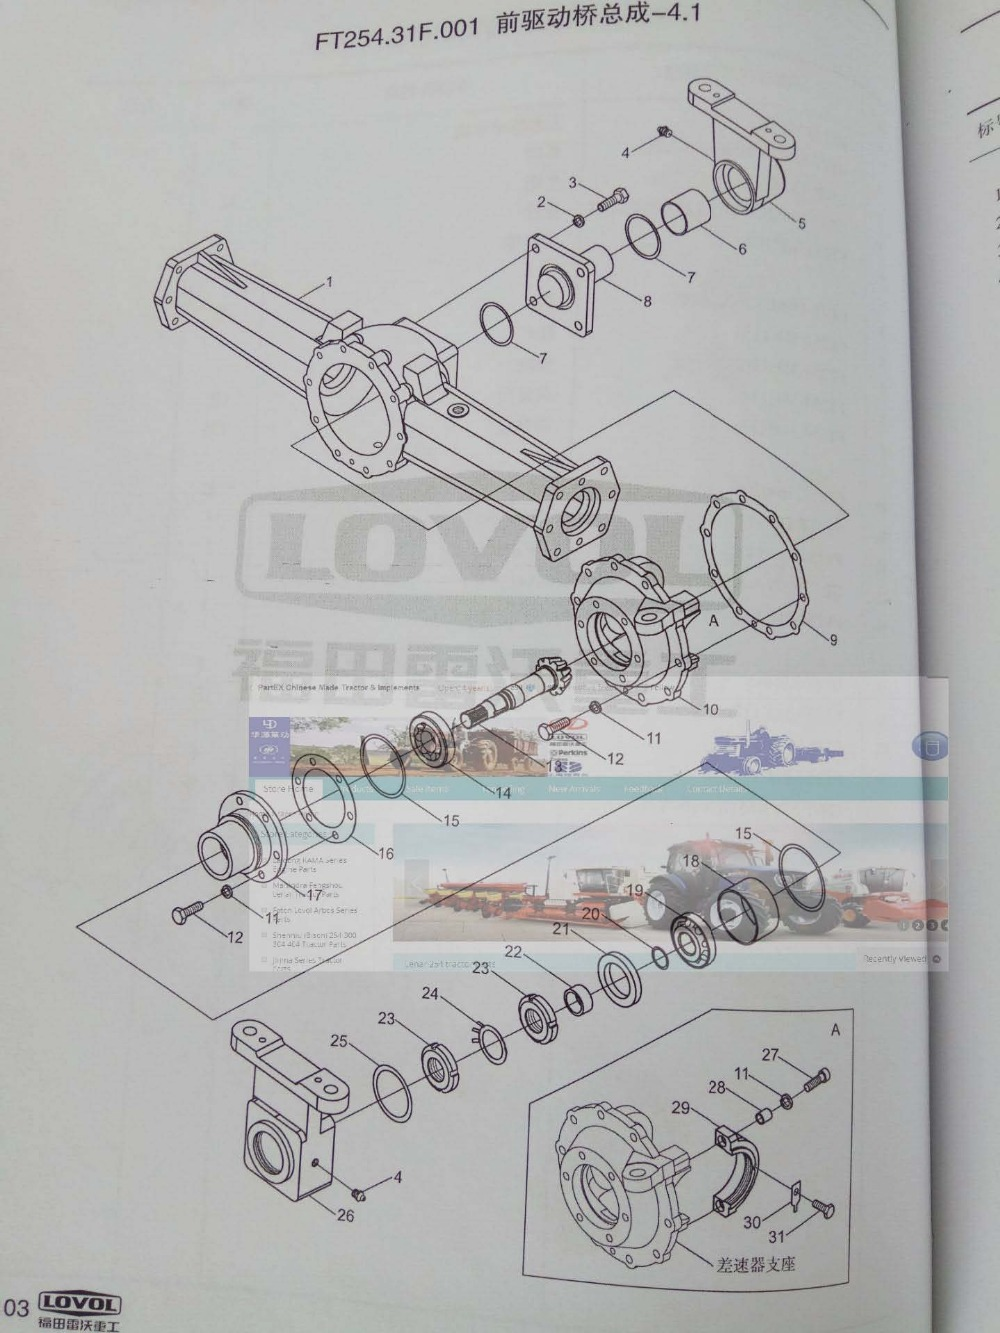 Foton Tractor Wiring Diagram Schematic Diagrams Old Benye Chinese Images Ford Diesel